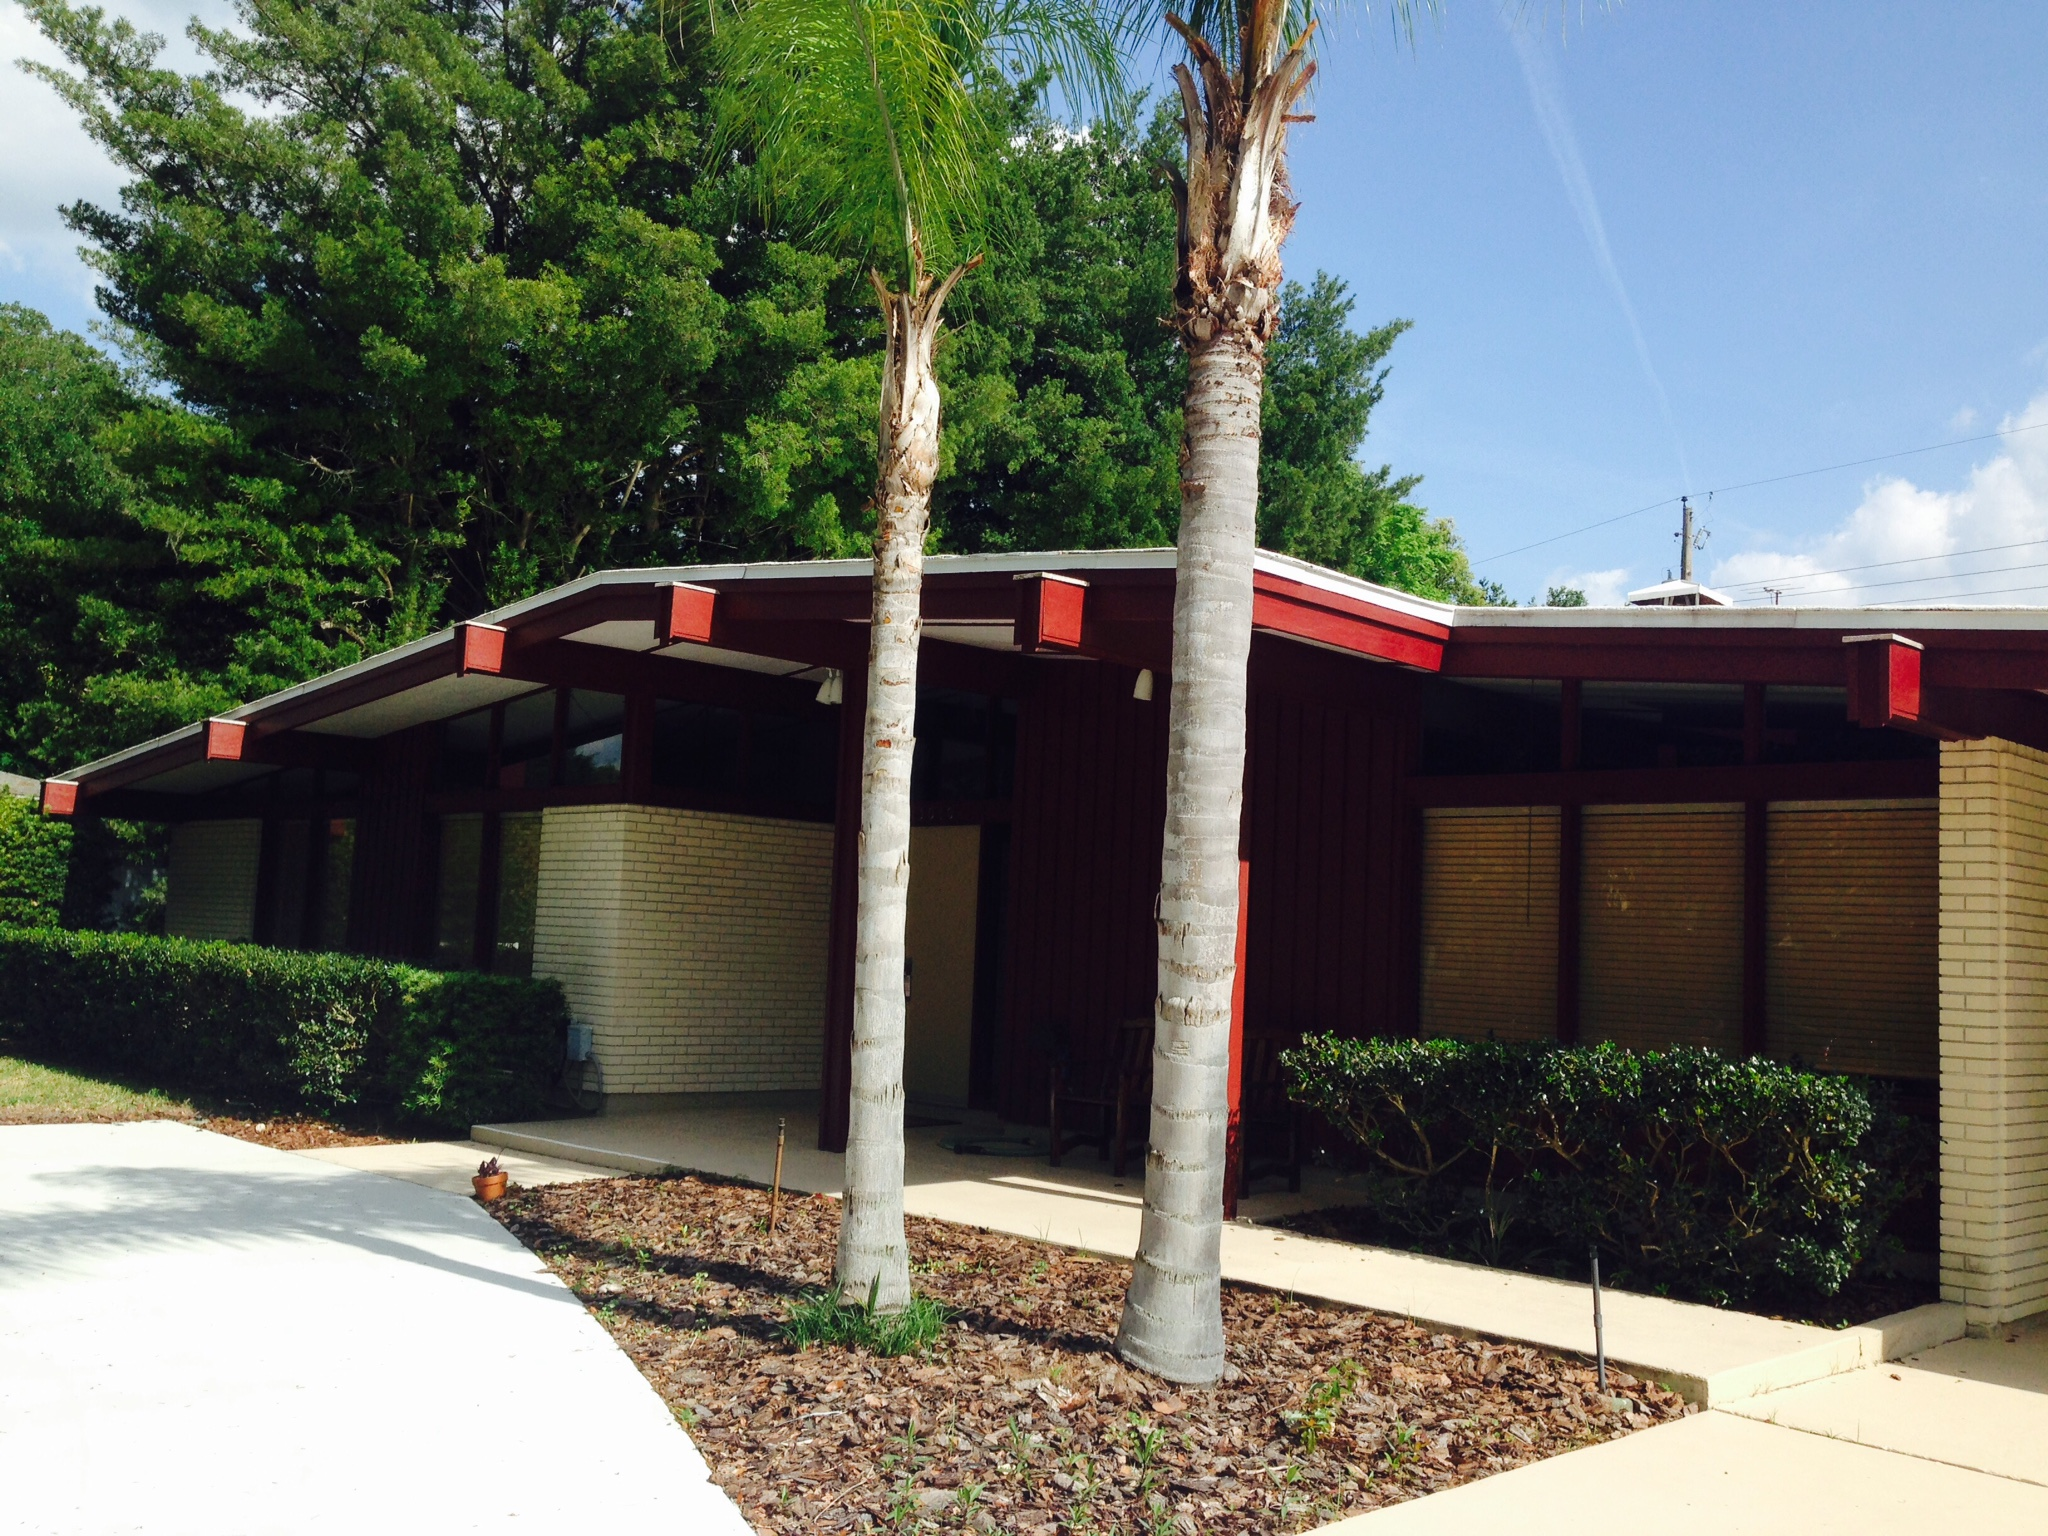 Mid century modern homes in tampa florida - Home modern